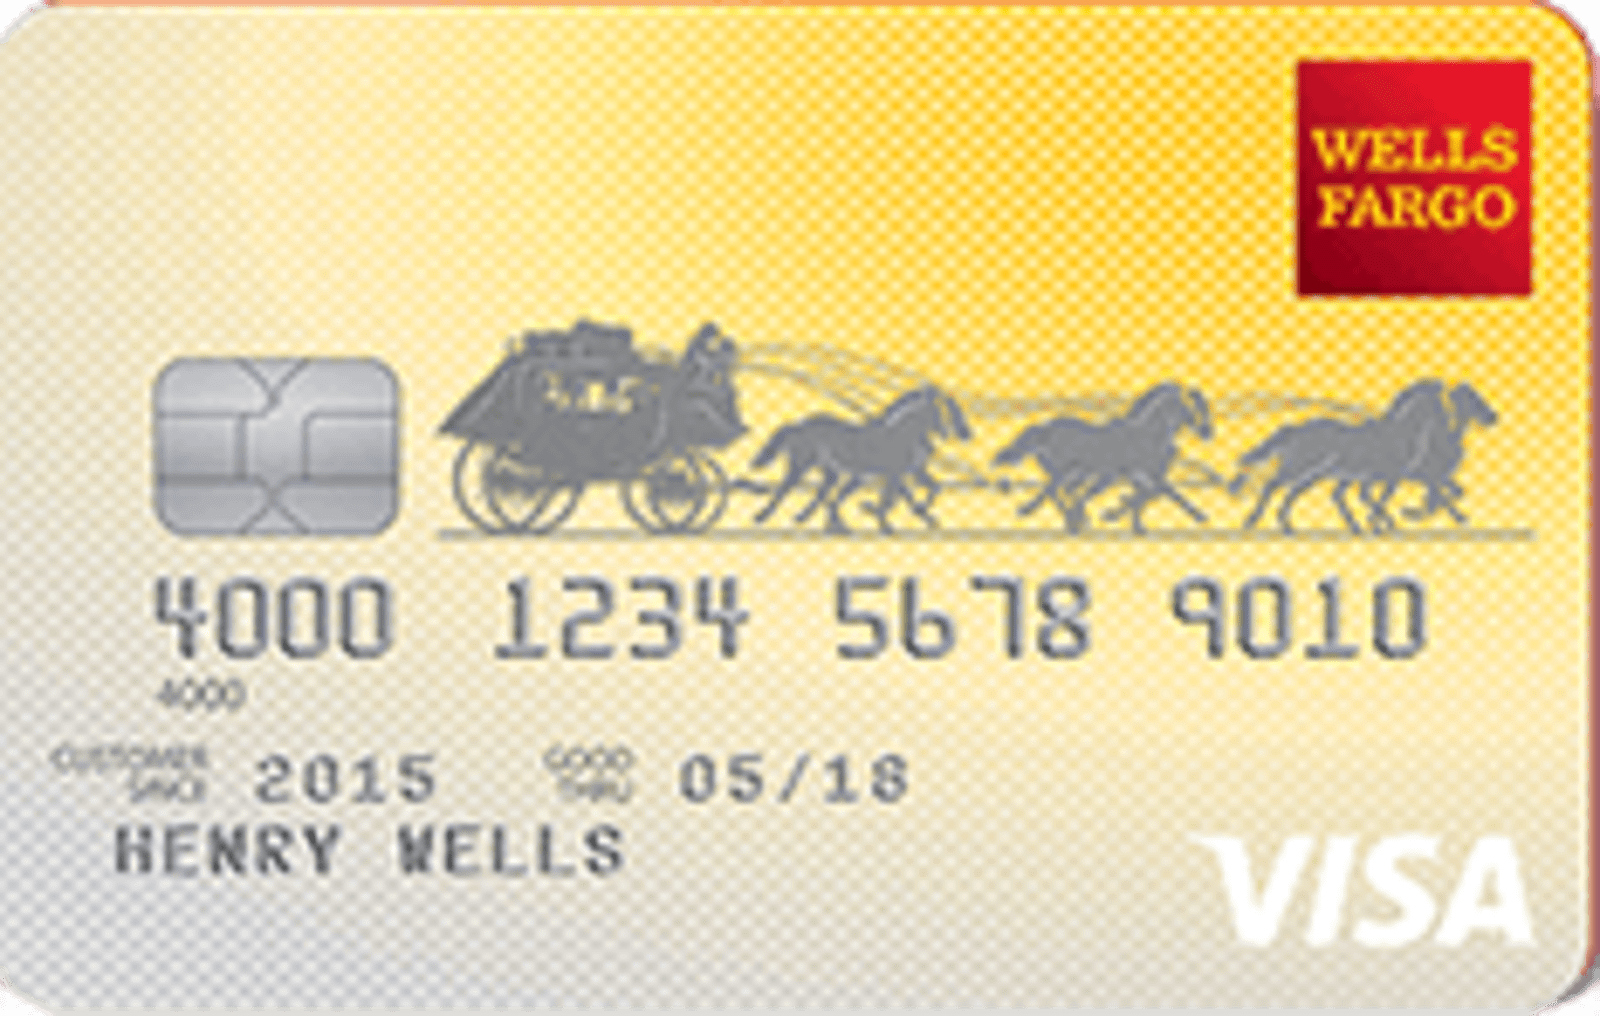 Wells Fargo Cash Back College Card: Should You Apply